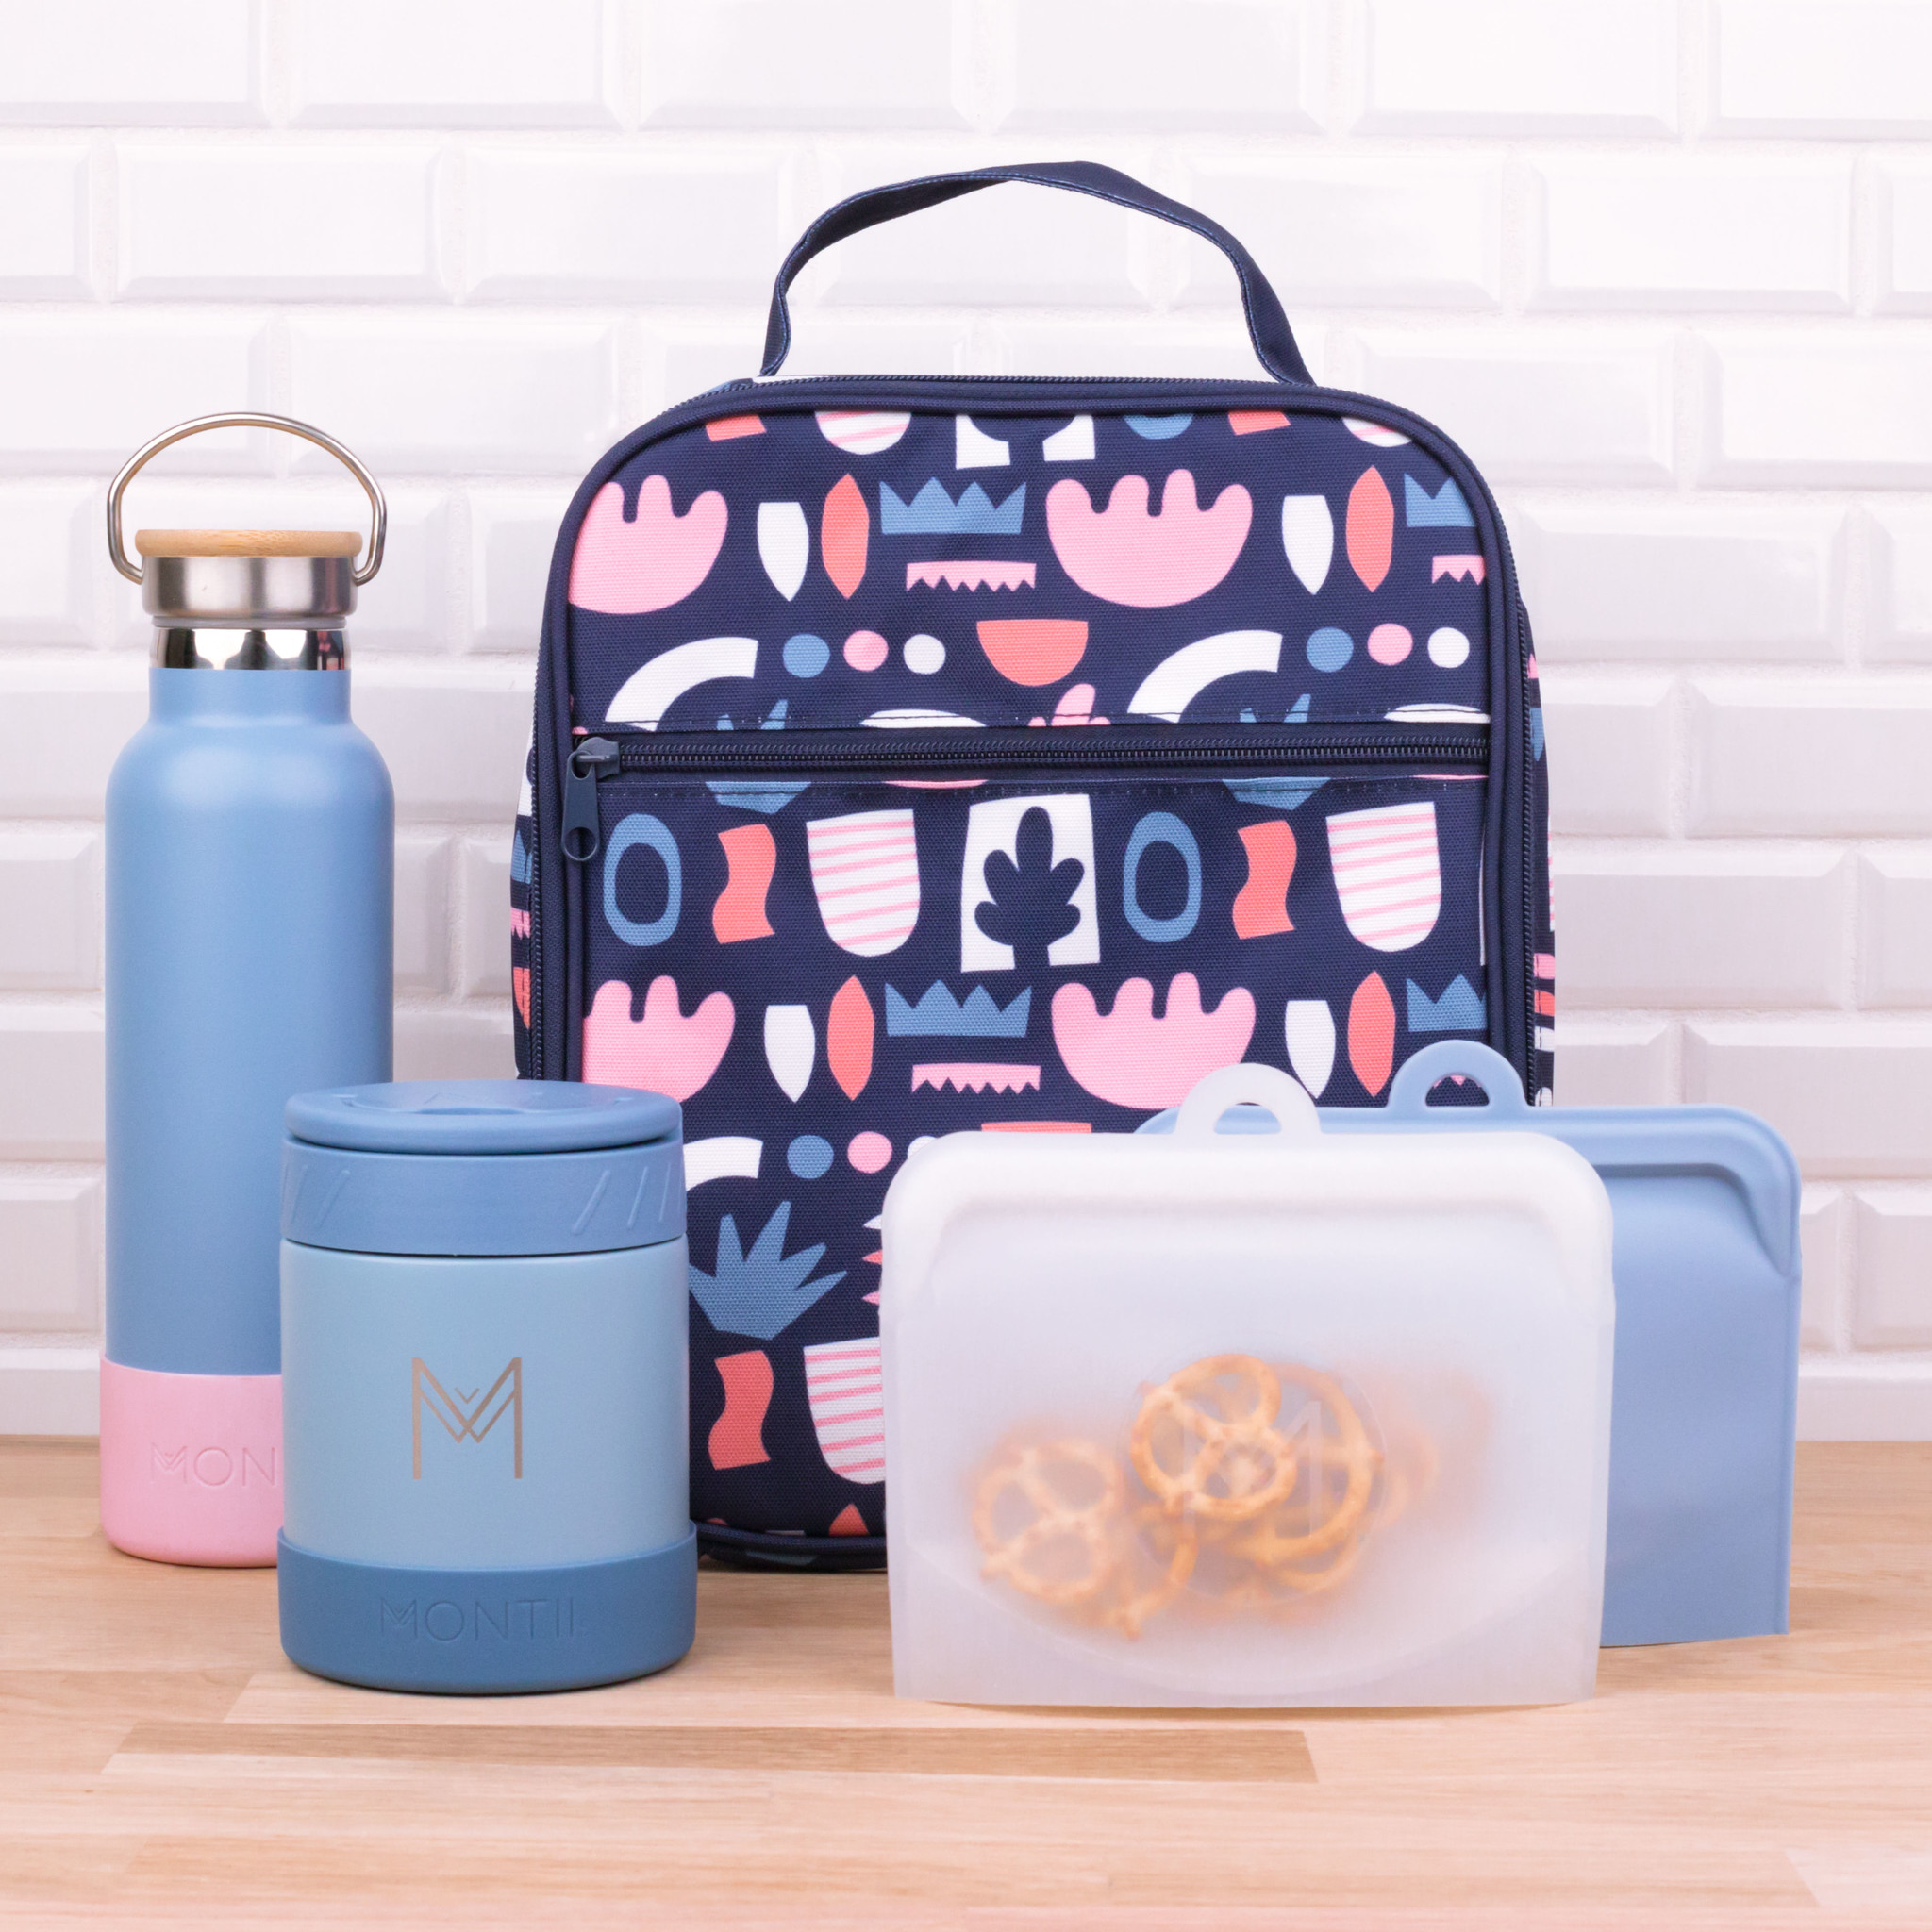 Montii insulated Lunch Bag - Bloom-7